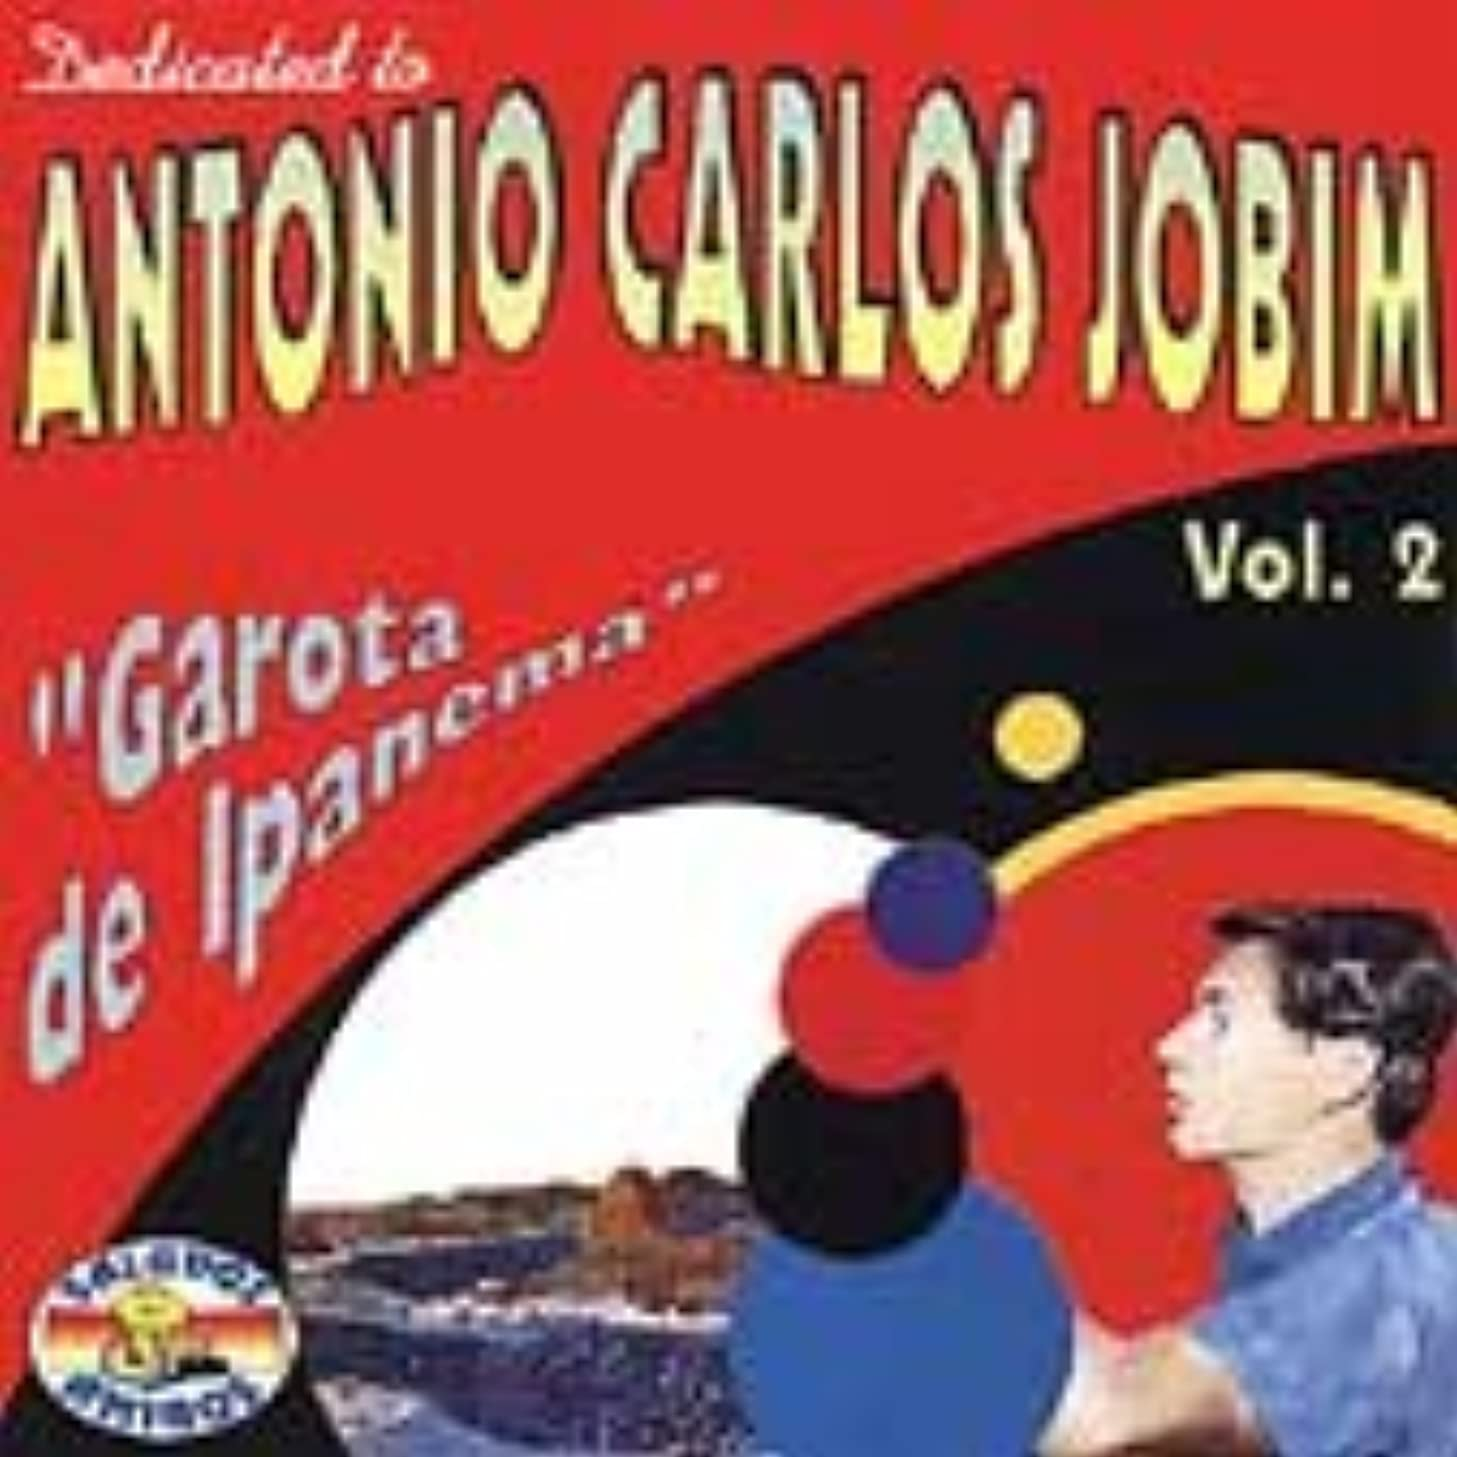 Dedicated to Antonio Carlos Jobim, Vol. 2